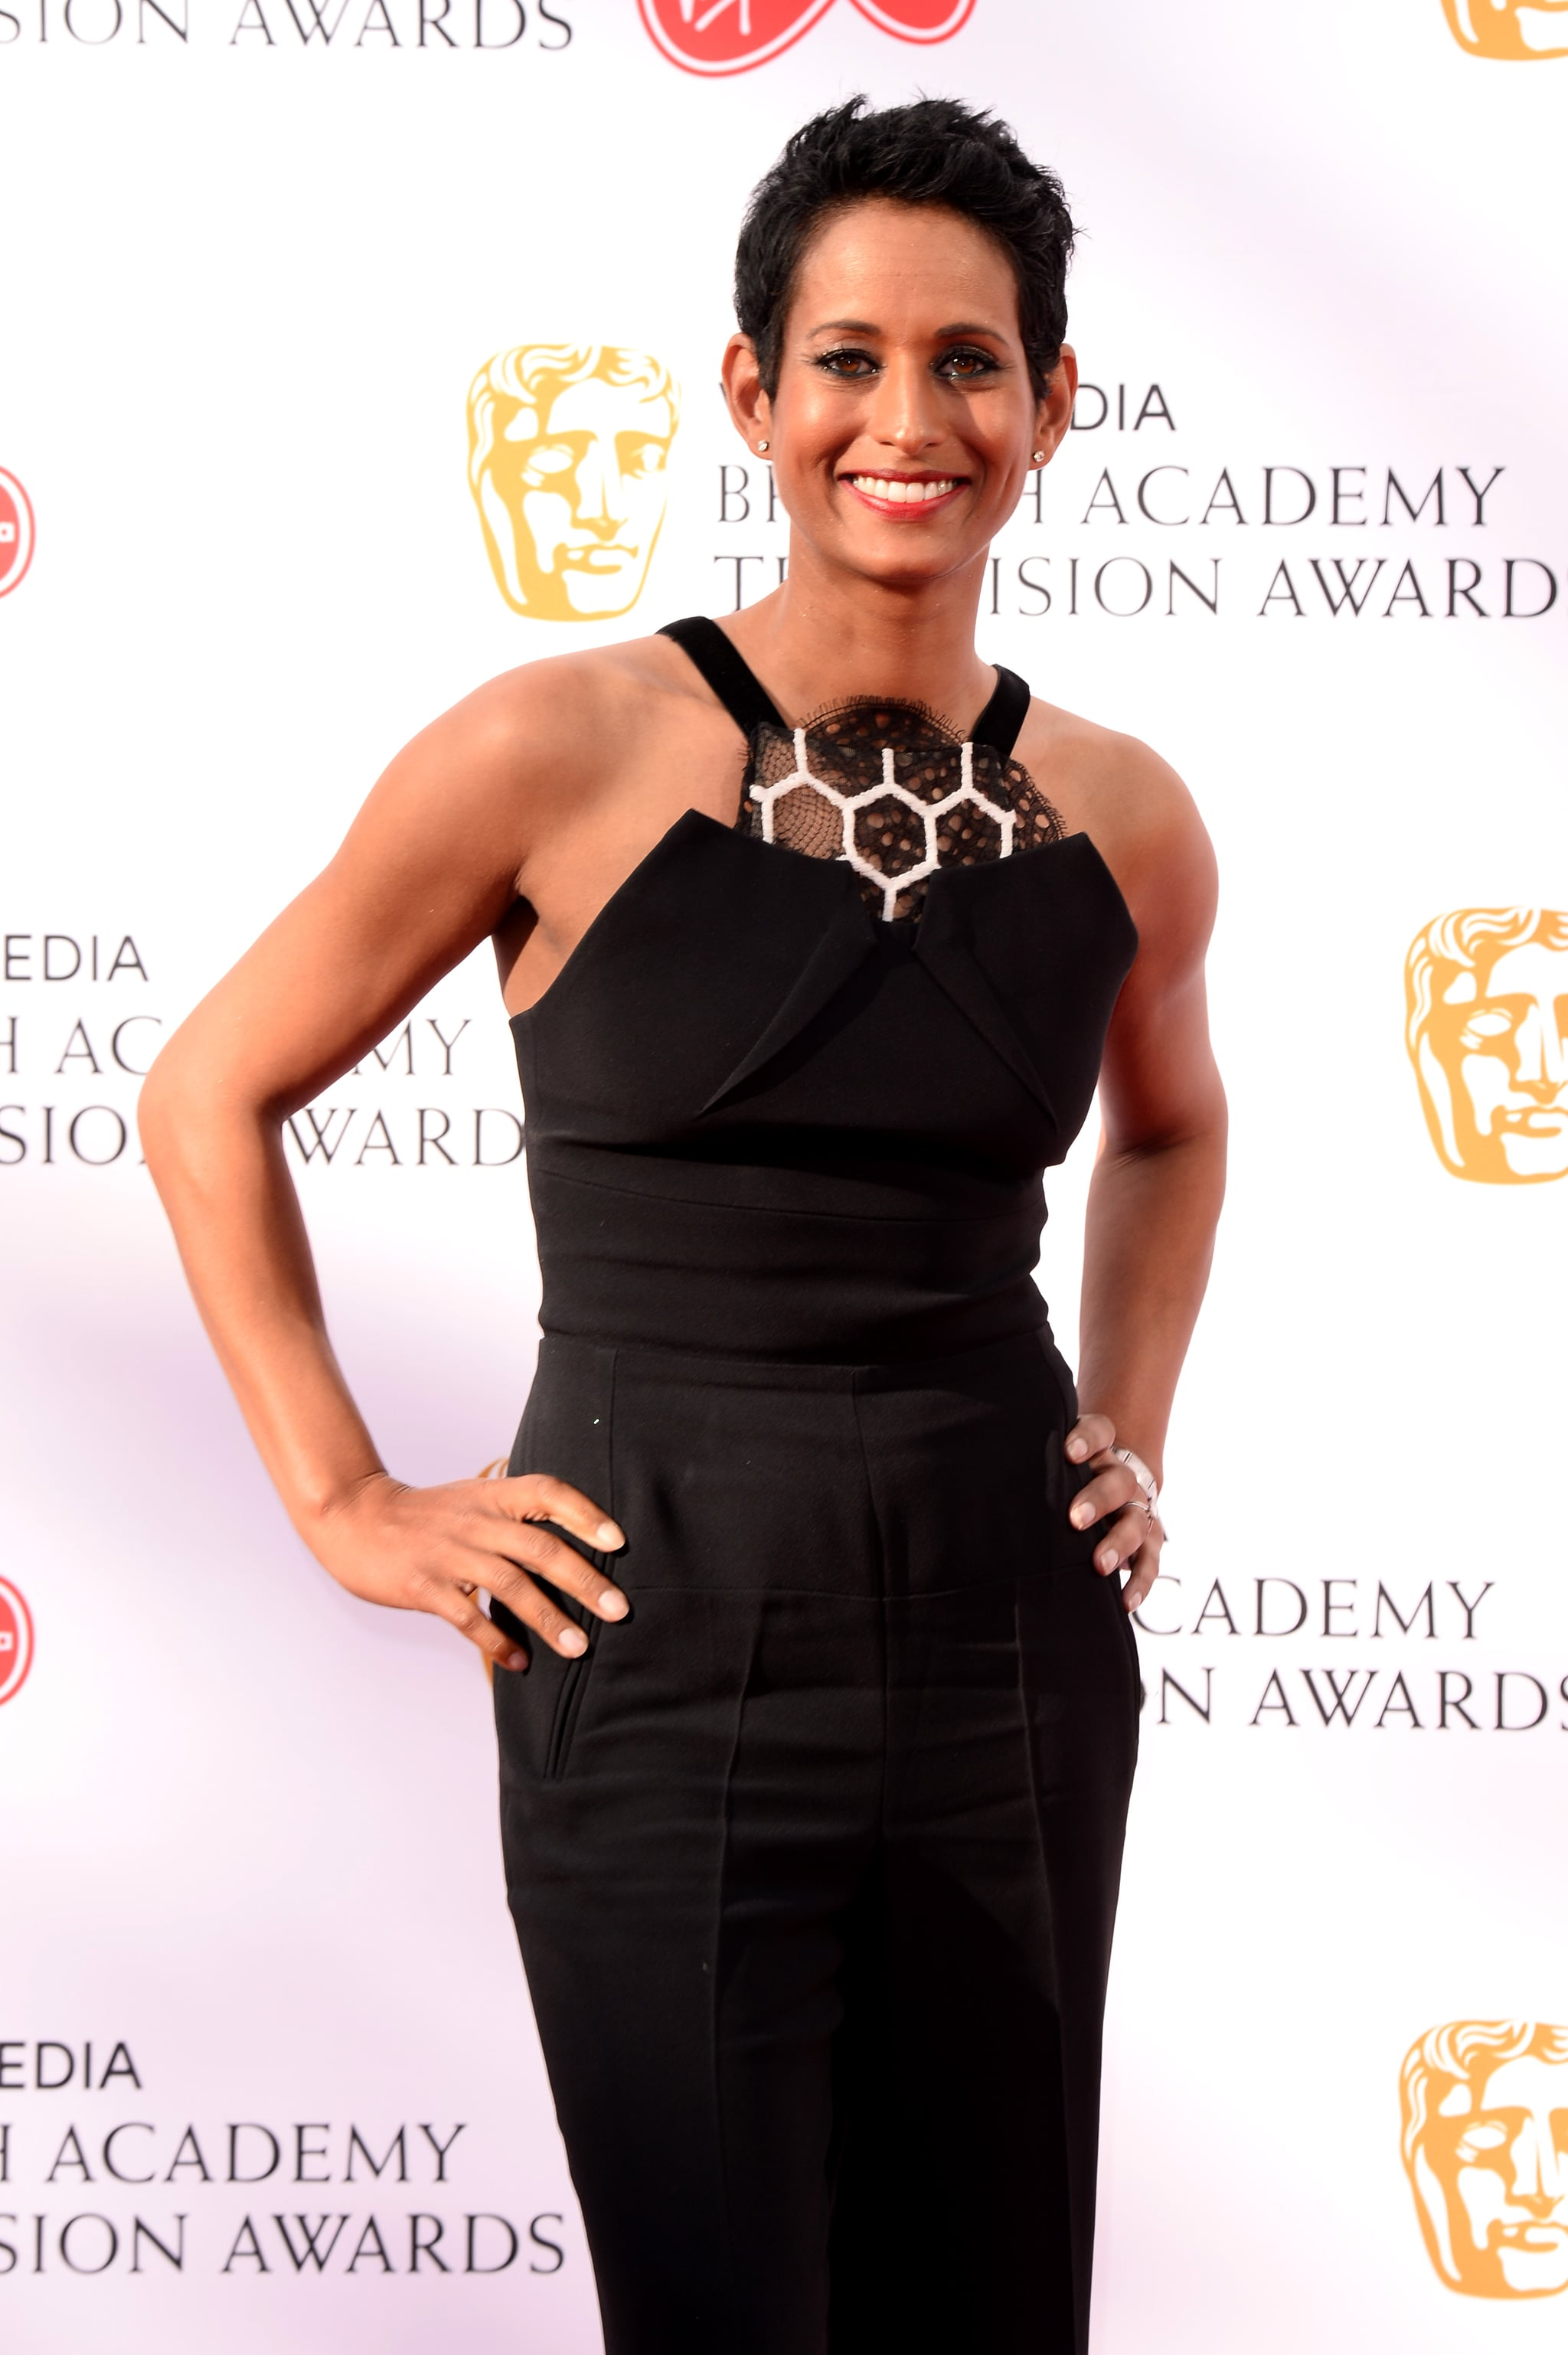 LONDON, ENGLAND - MAY 12: Naga Munchetty attends the Virgin Media British Academy Television Awards 2019 at The Royal Festival Hall on May 12, 2019 in London, England. (Photo by Jeff Spicer/Getty Images)